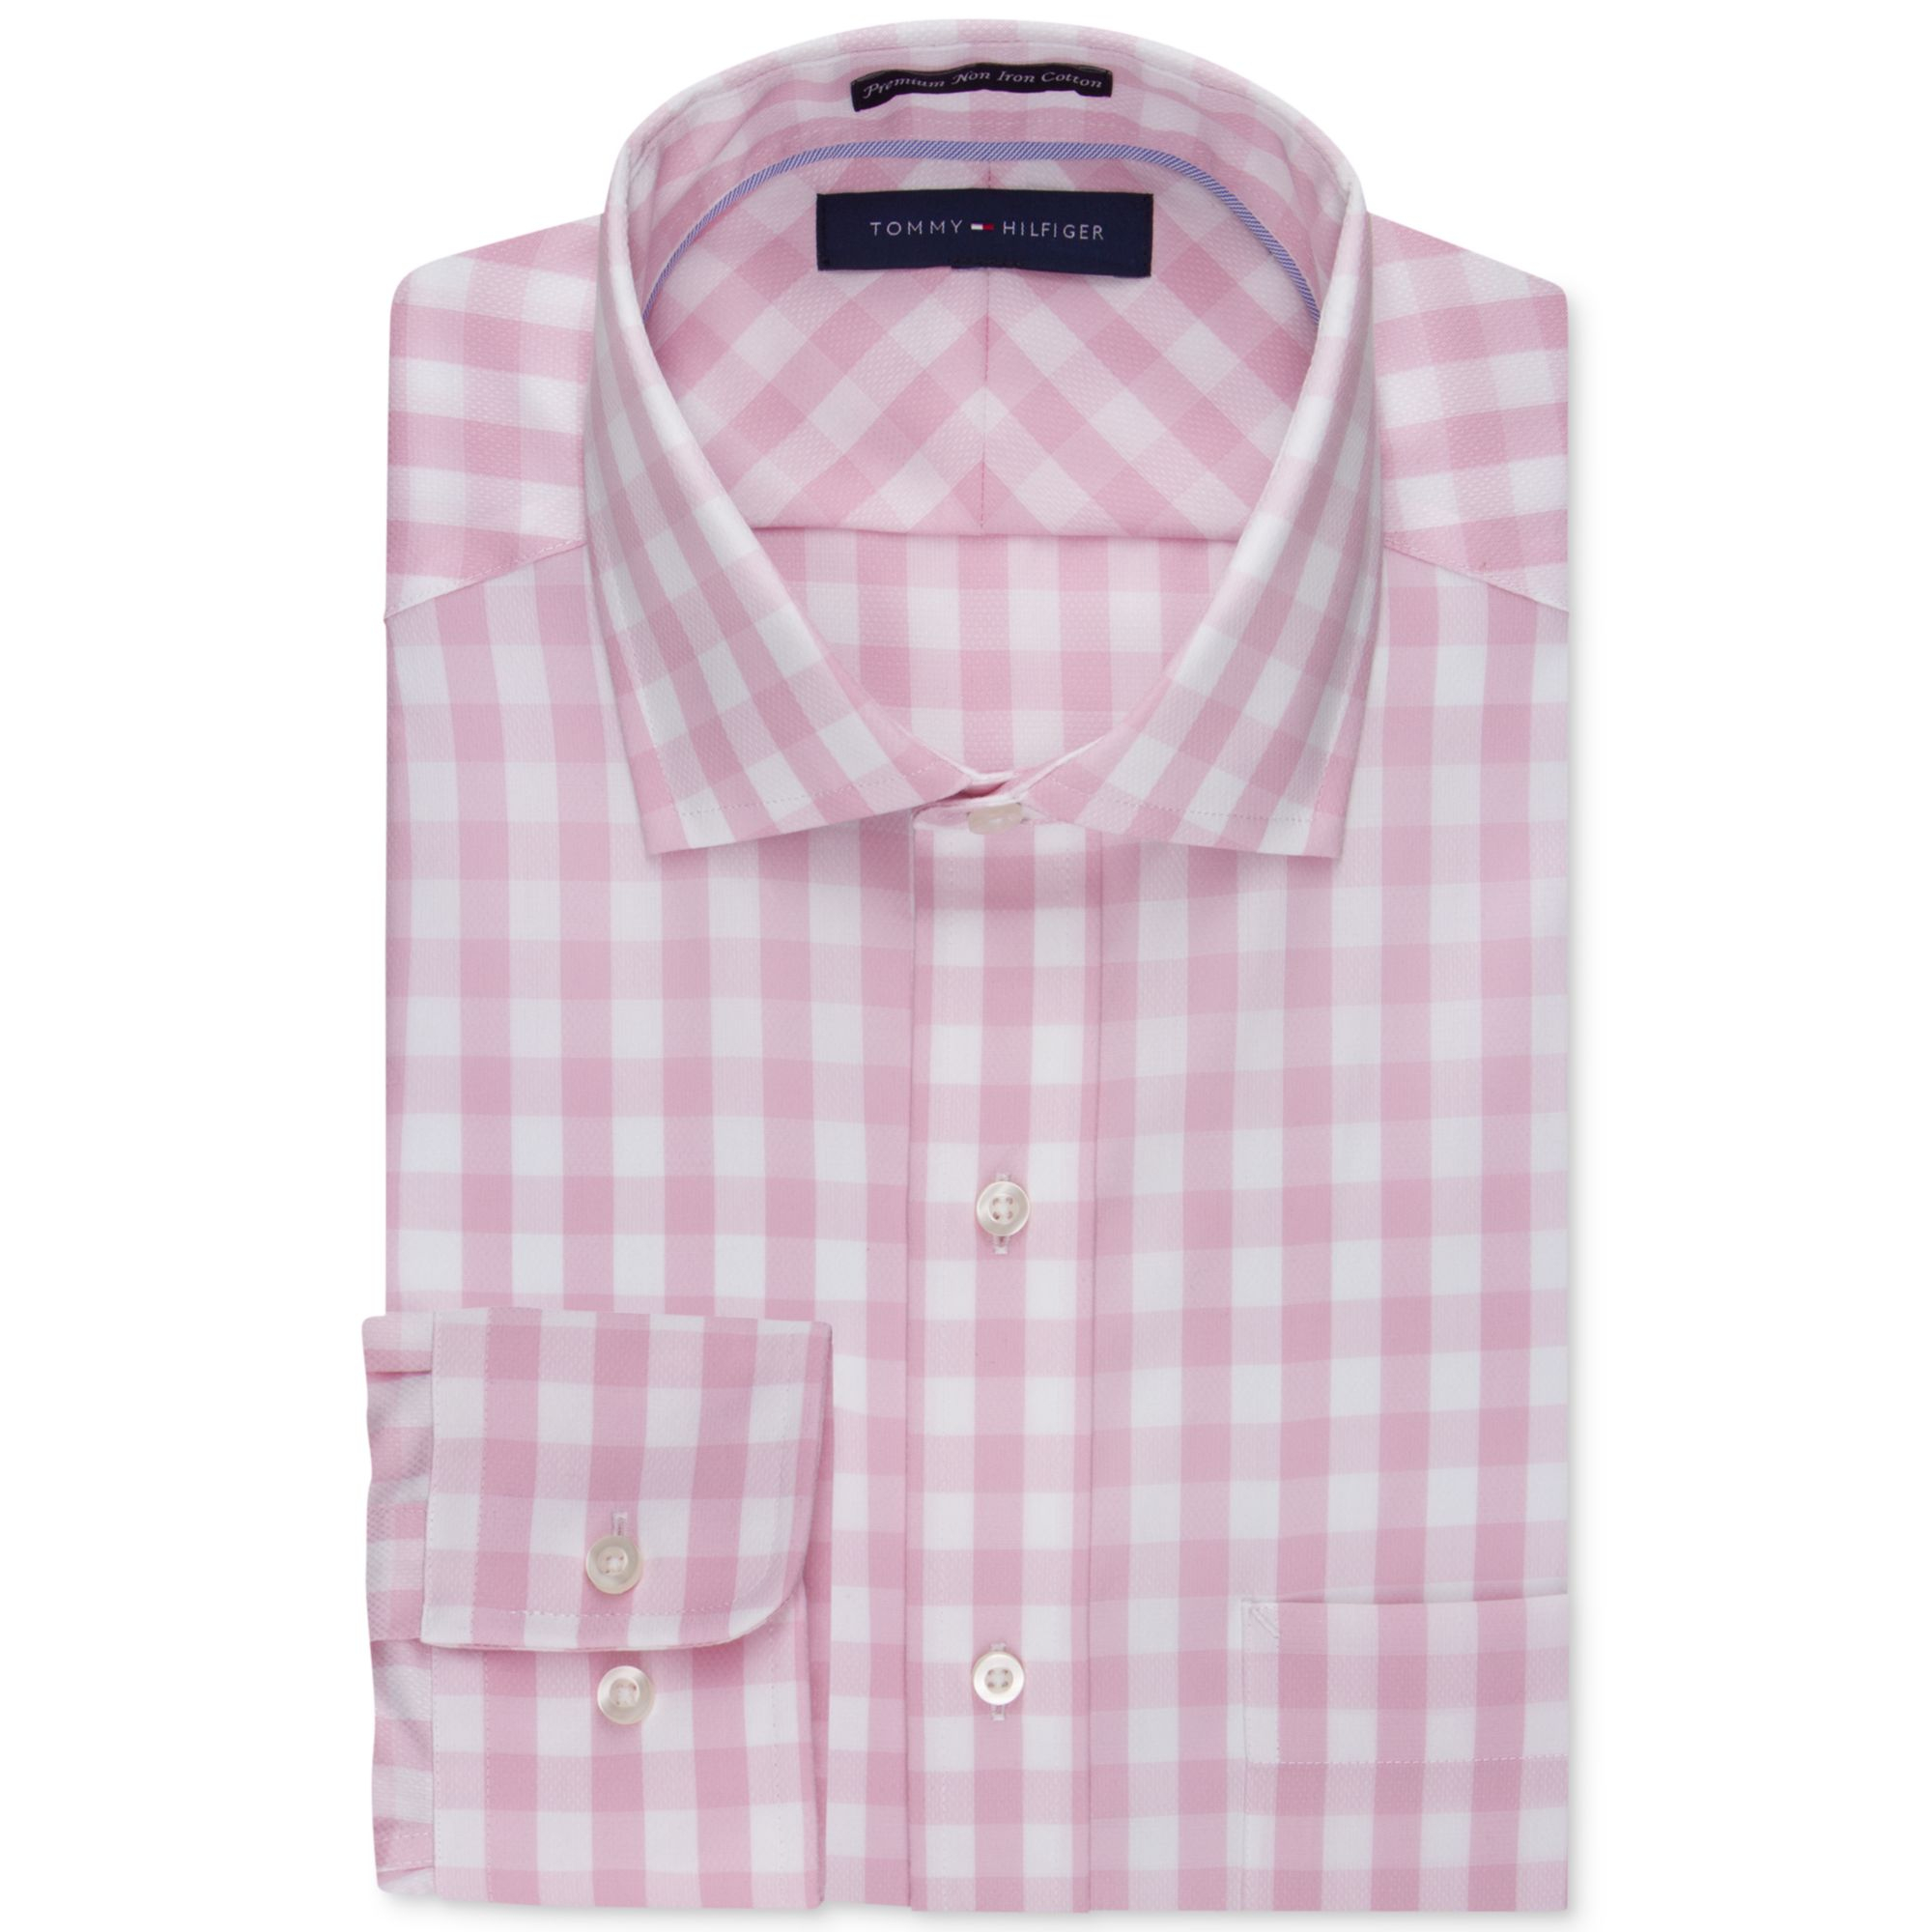 e231883c Tommy Hilfiger No Iron Pink and White Bold Check Dress Shirt in Pink ...